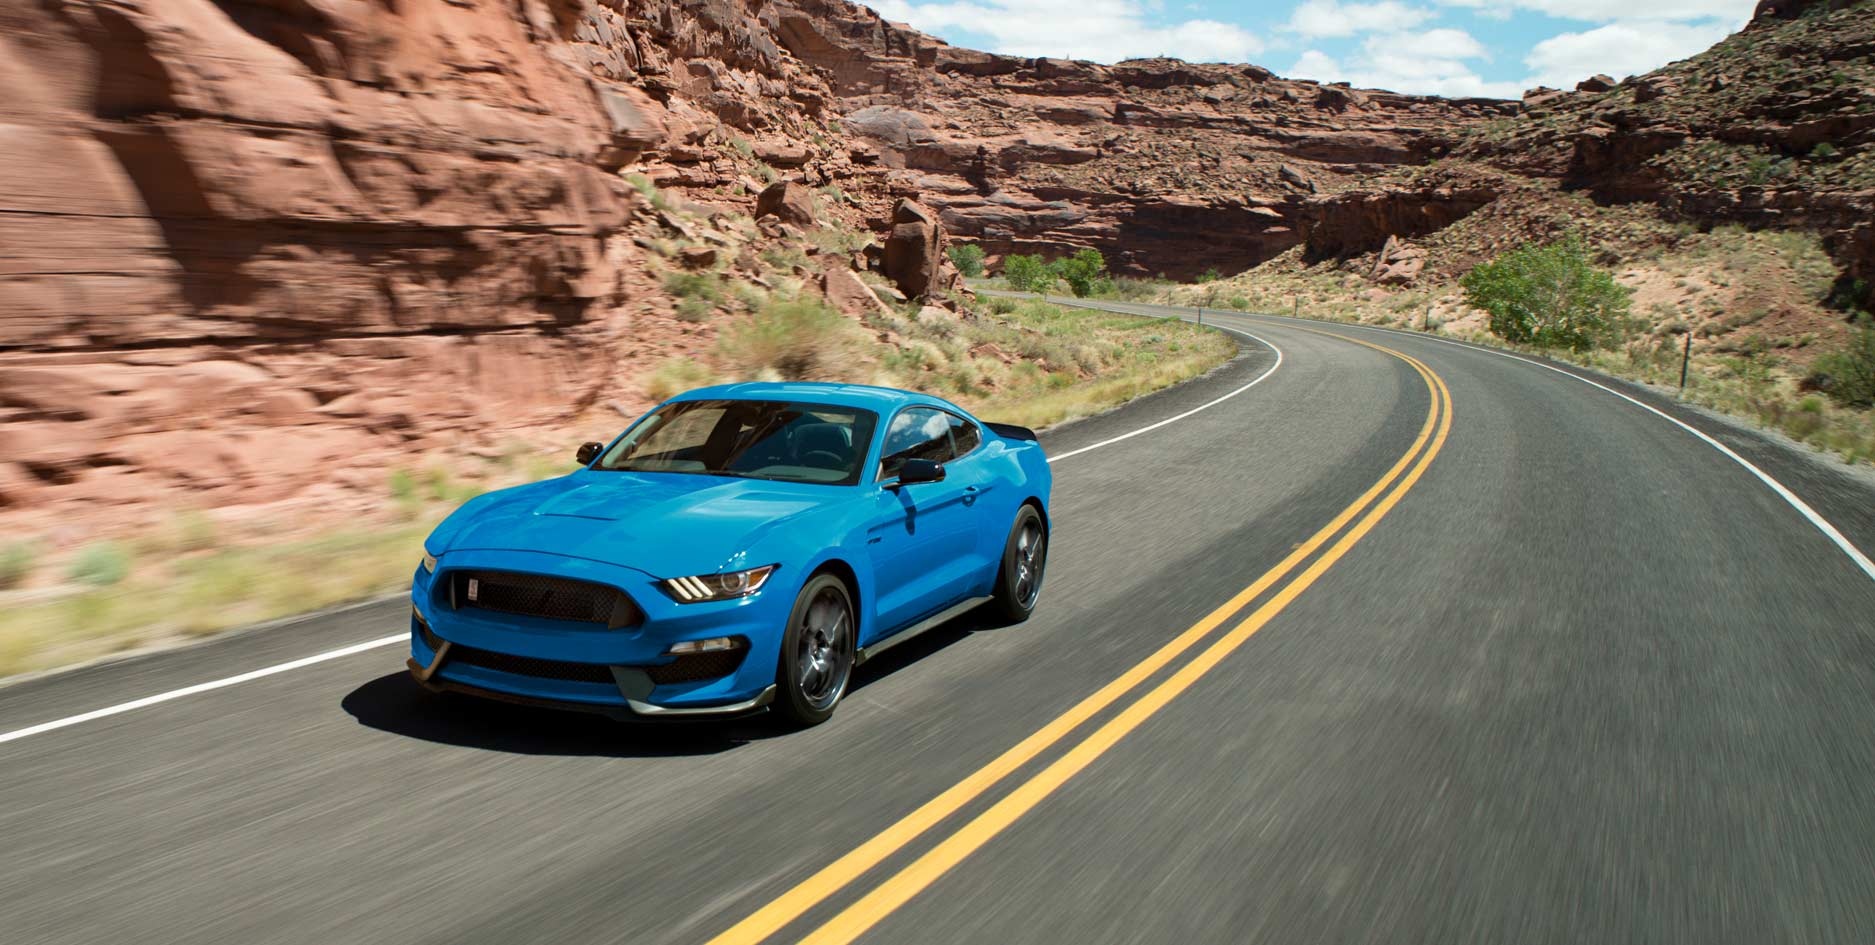 2017 Ford Mustang 5.2L Shelby 350GT Price in UAE, Specs ...